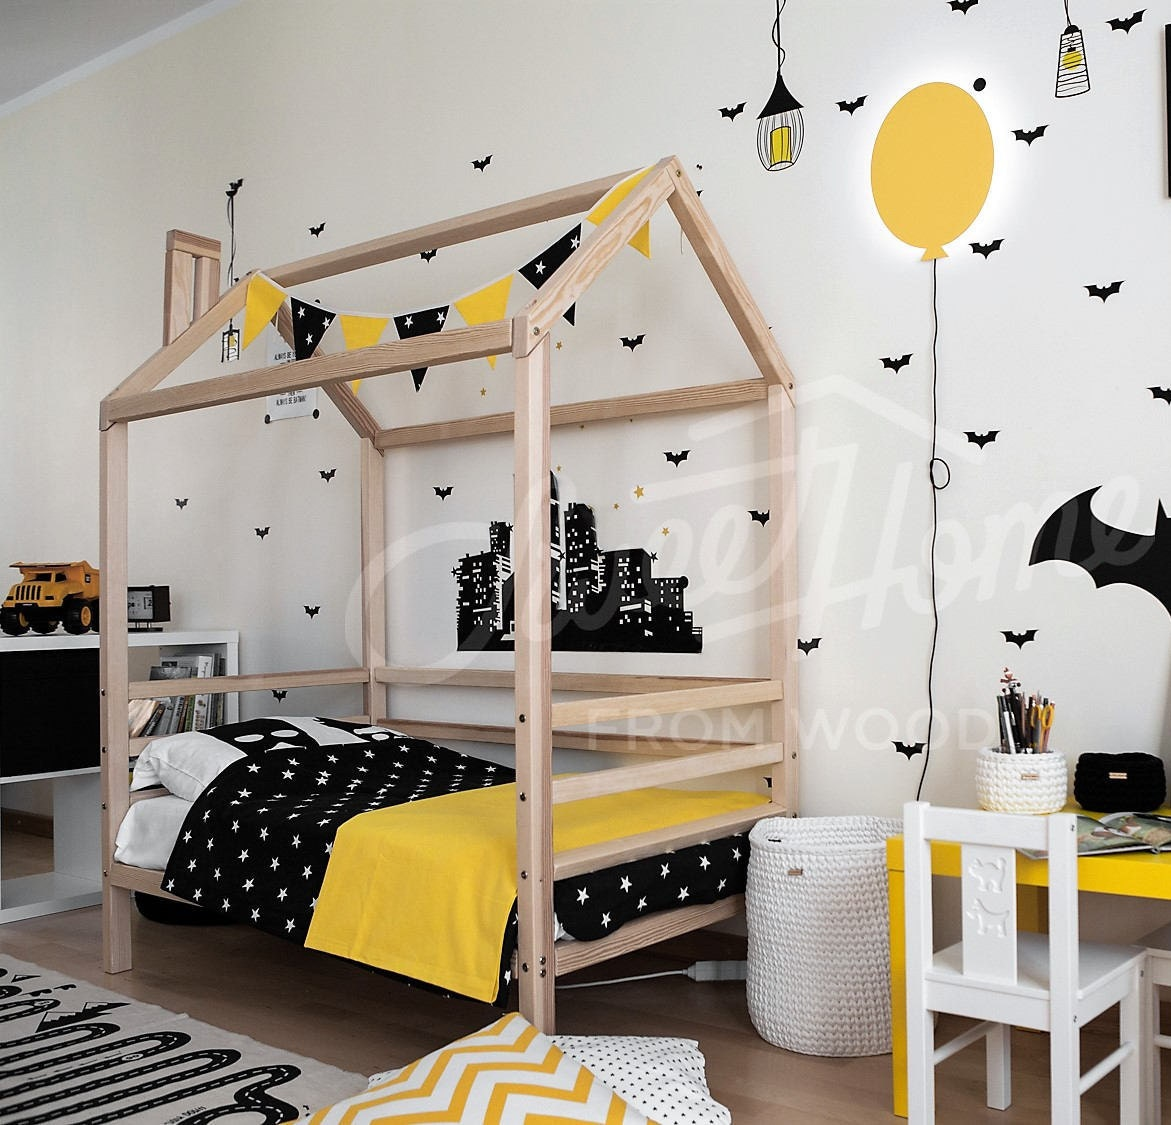 Toddler Bed Twinf Or King SINGLE Size House Bed Children